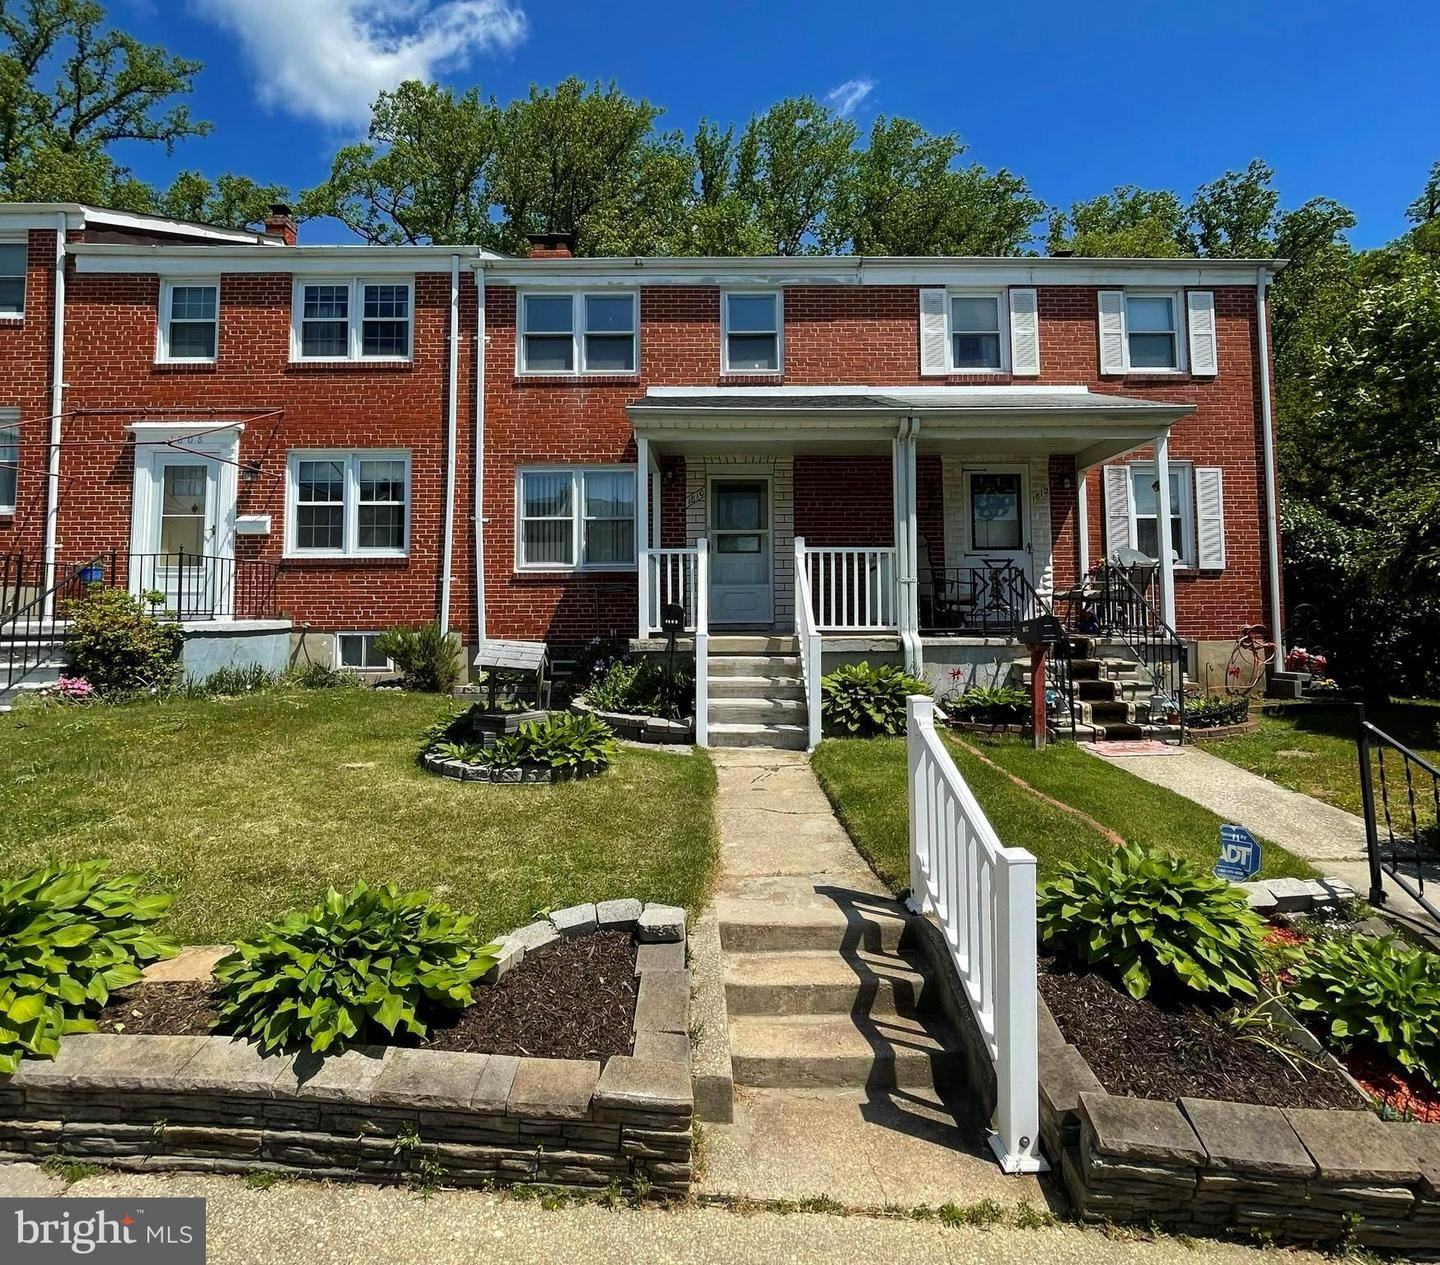 1810 TRENLEIGH RD, Baltimore, MD 21234 - MLS#: MDBC528082